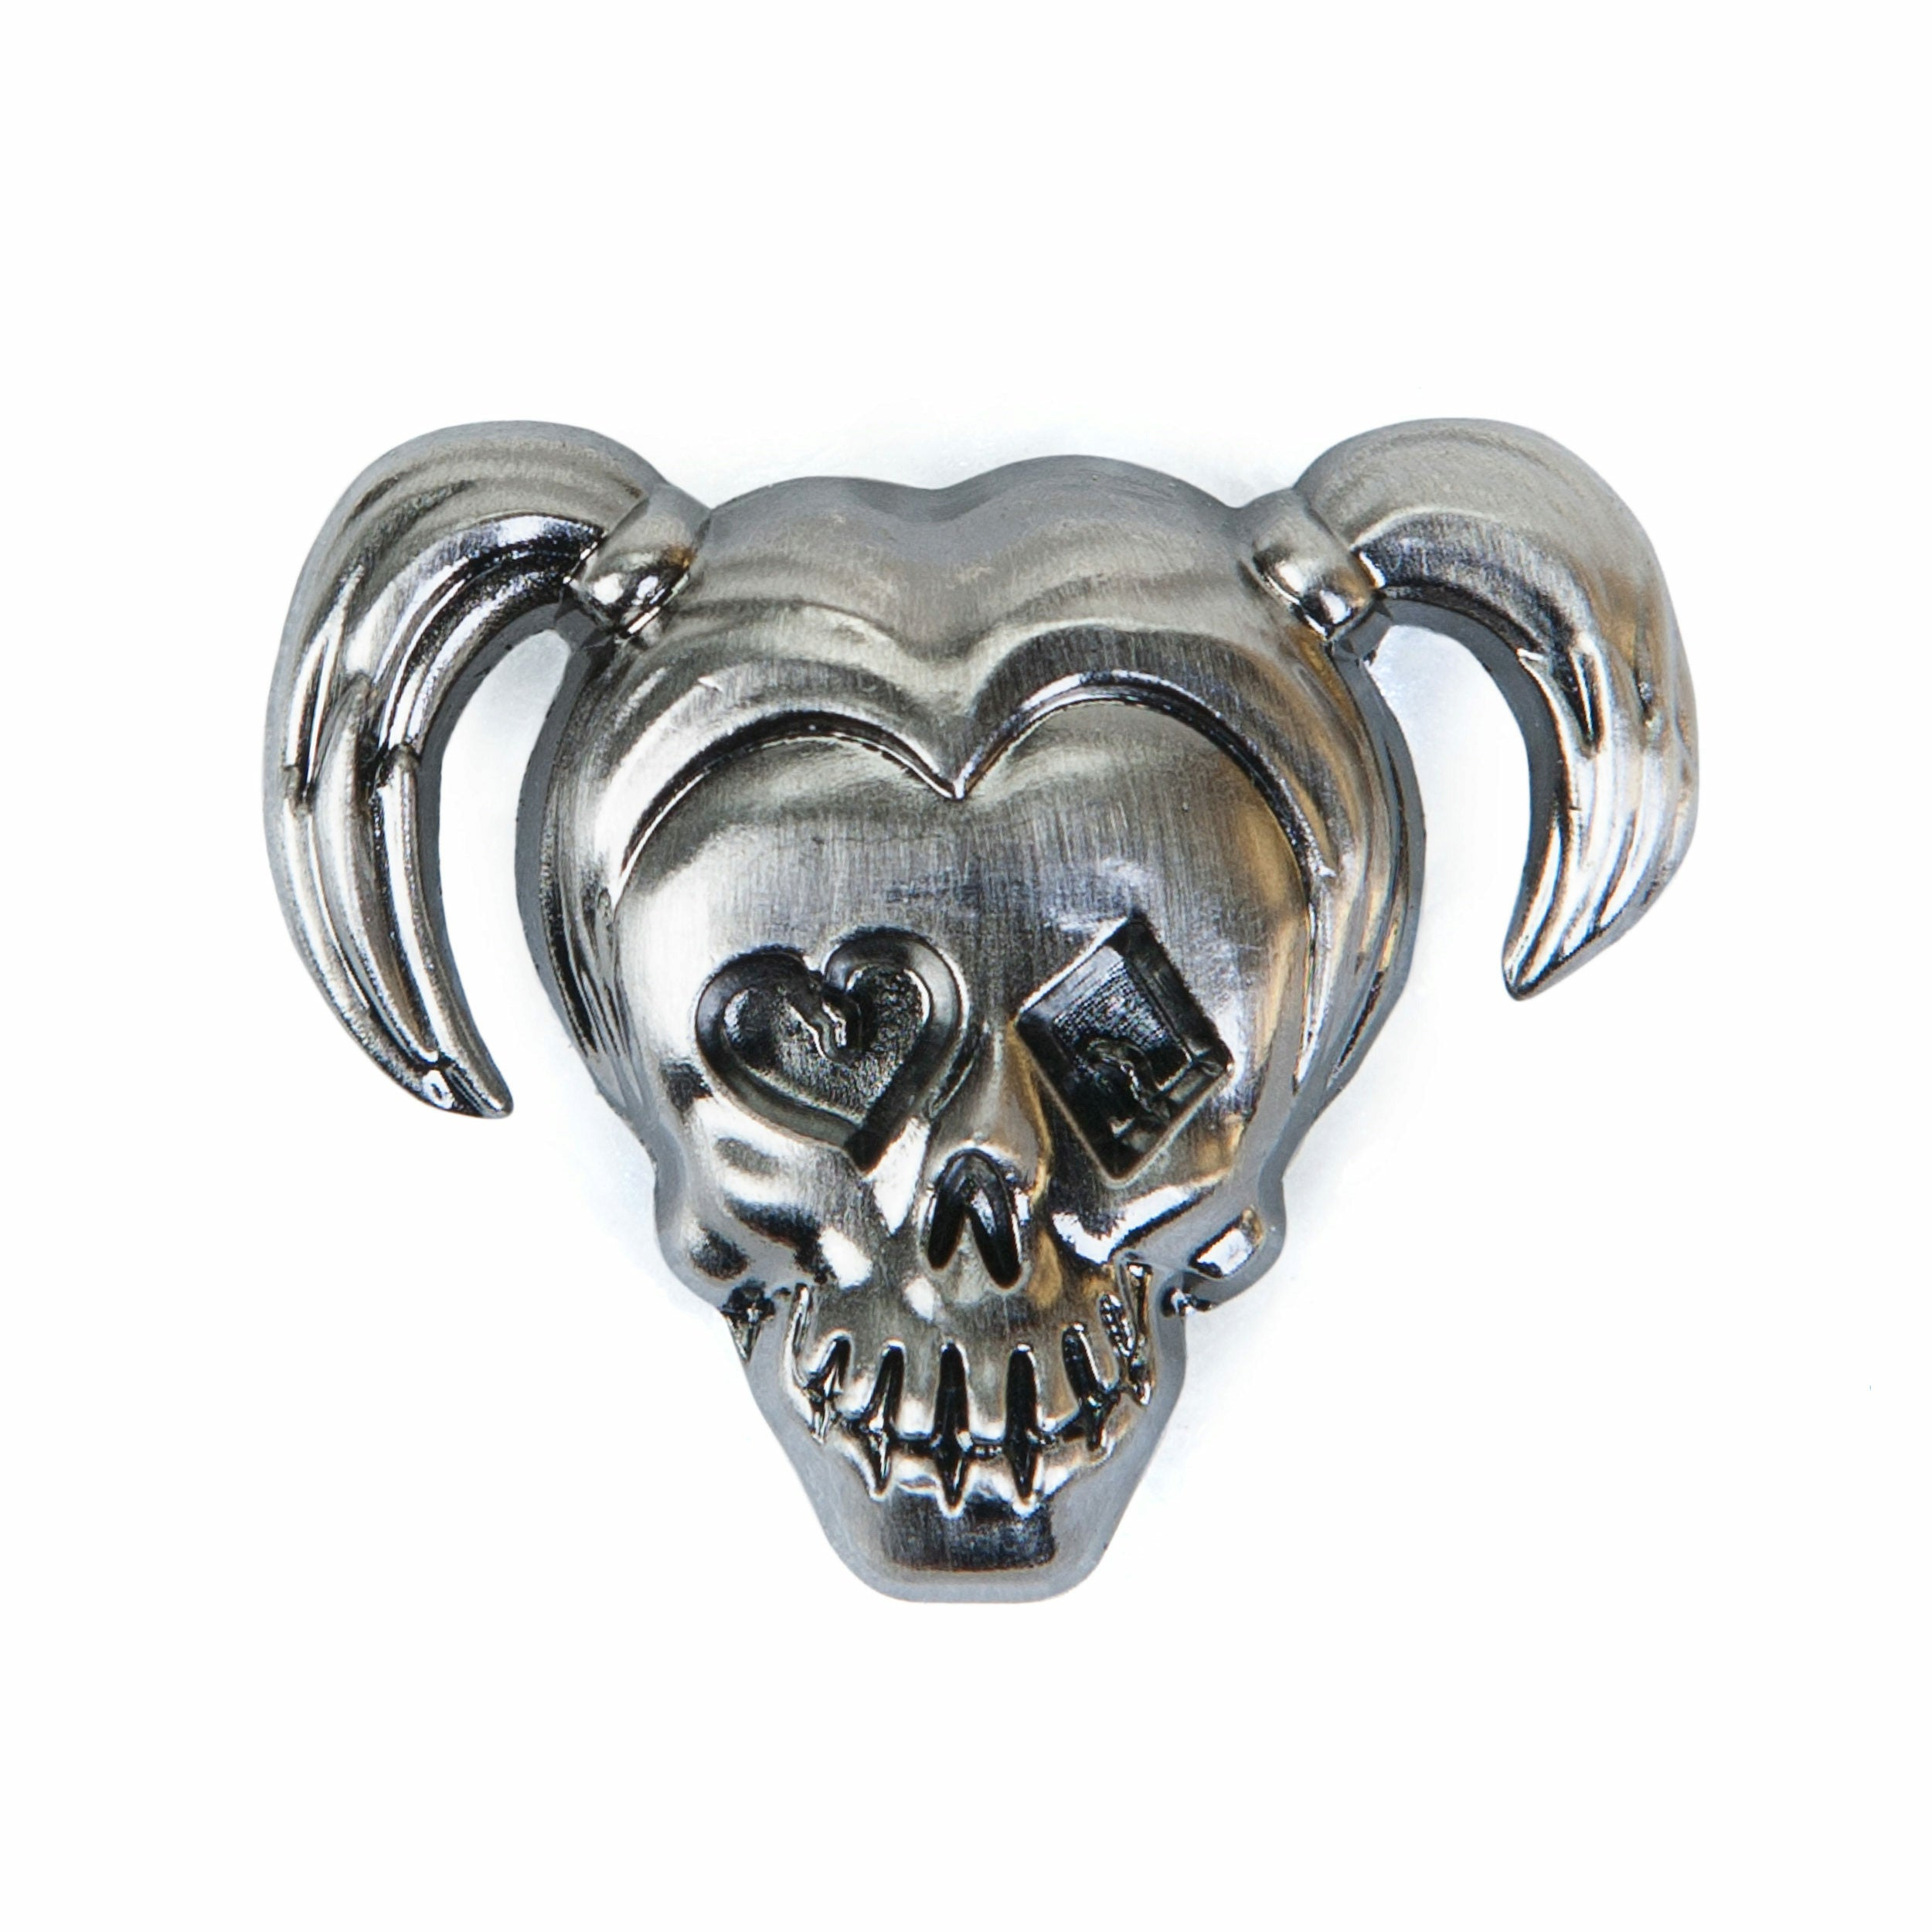 DC Comics Suicide Squad Harley Quinn Pewter Lapel Pin